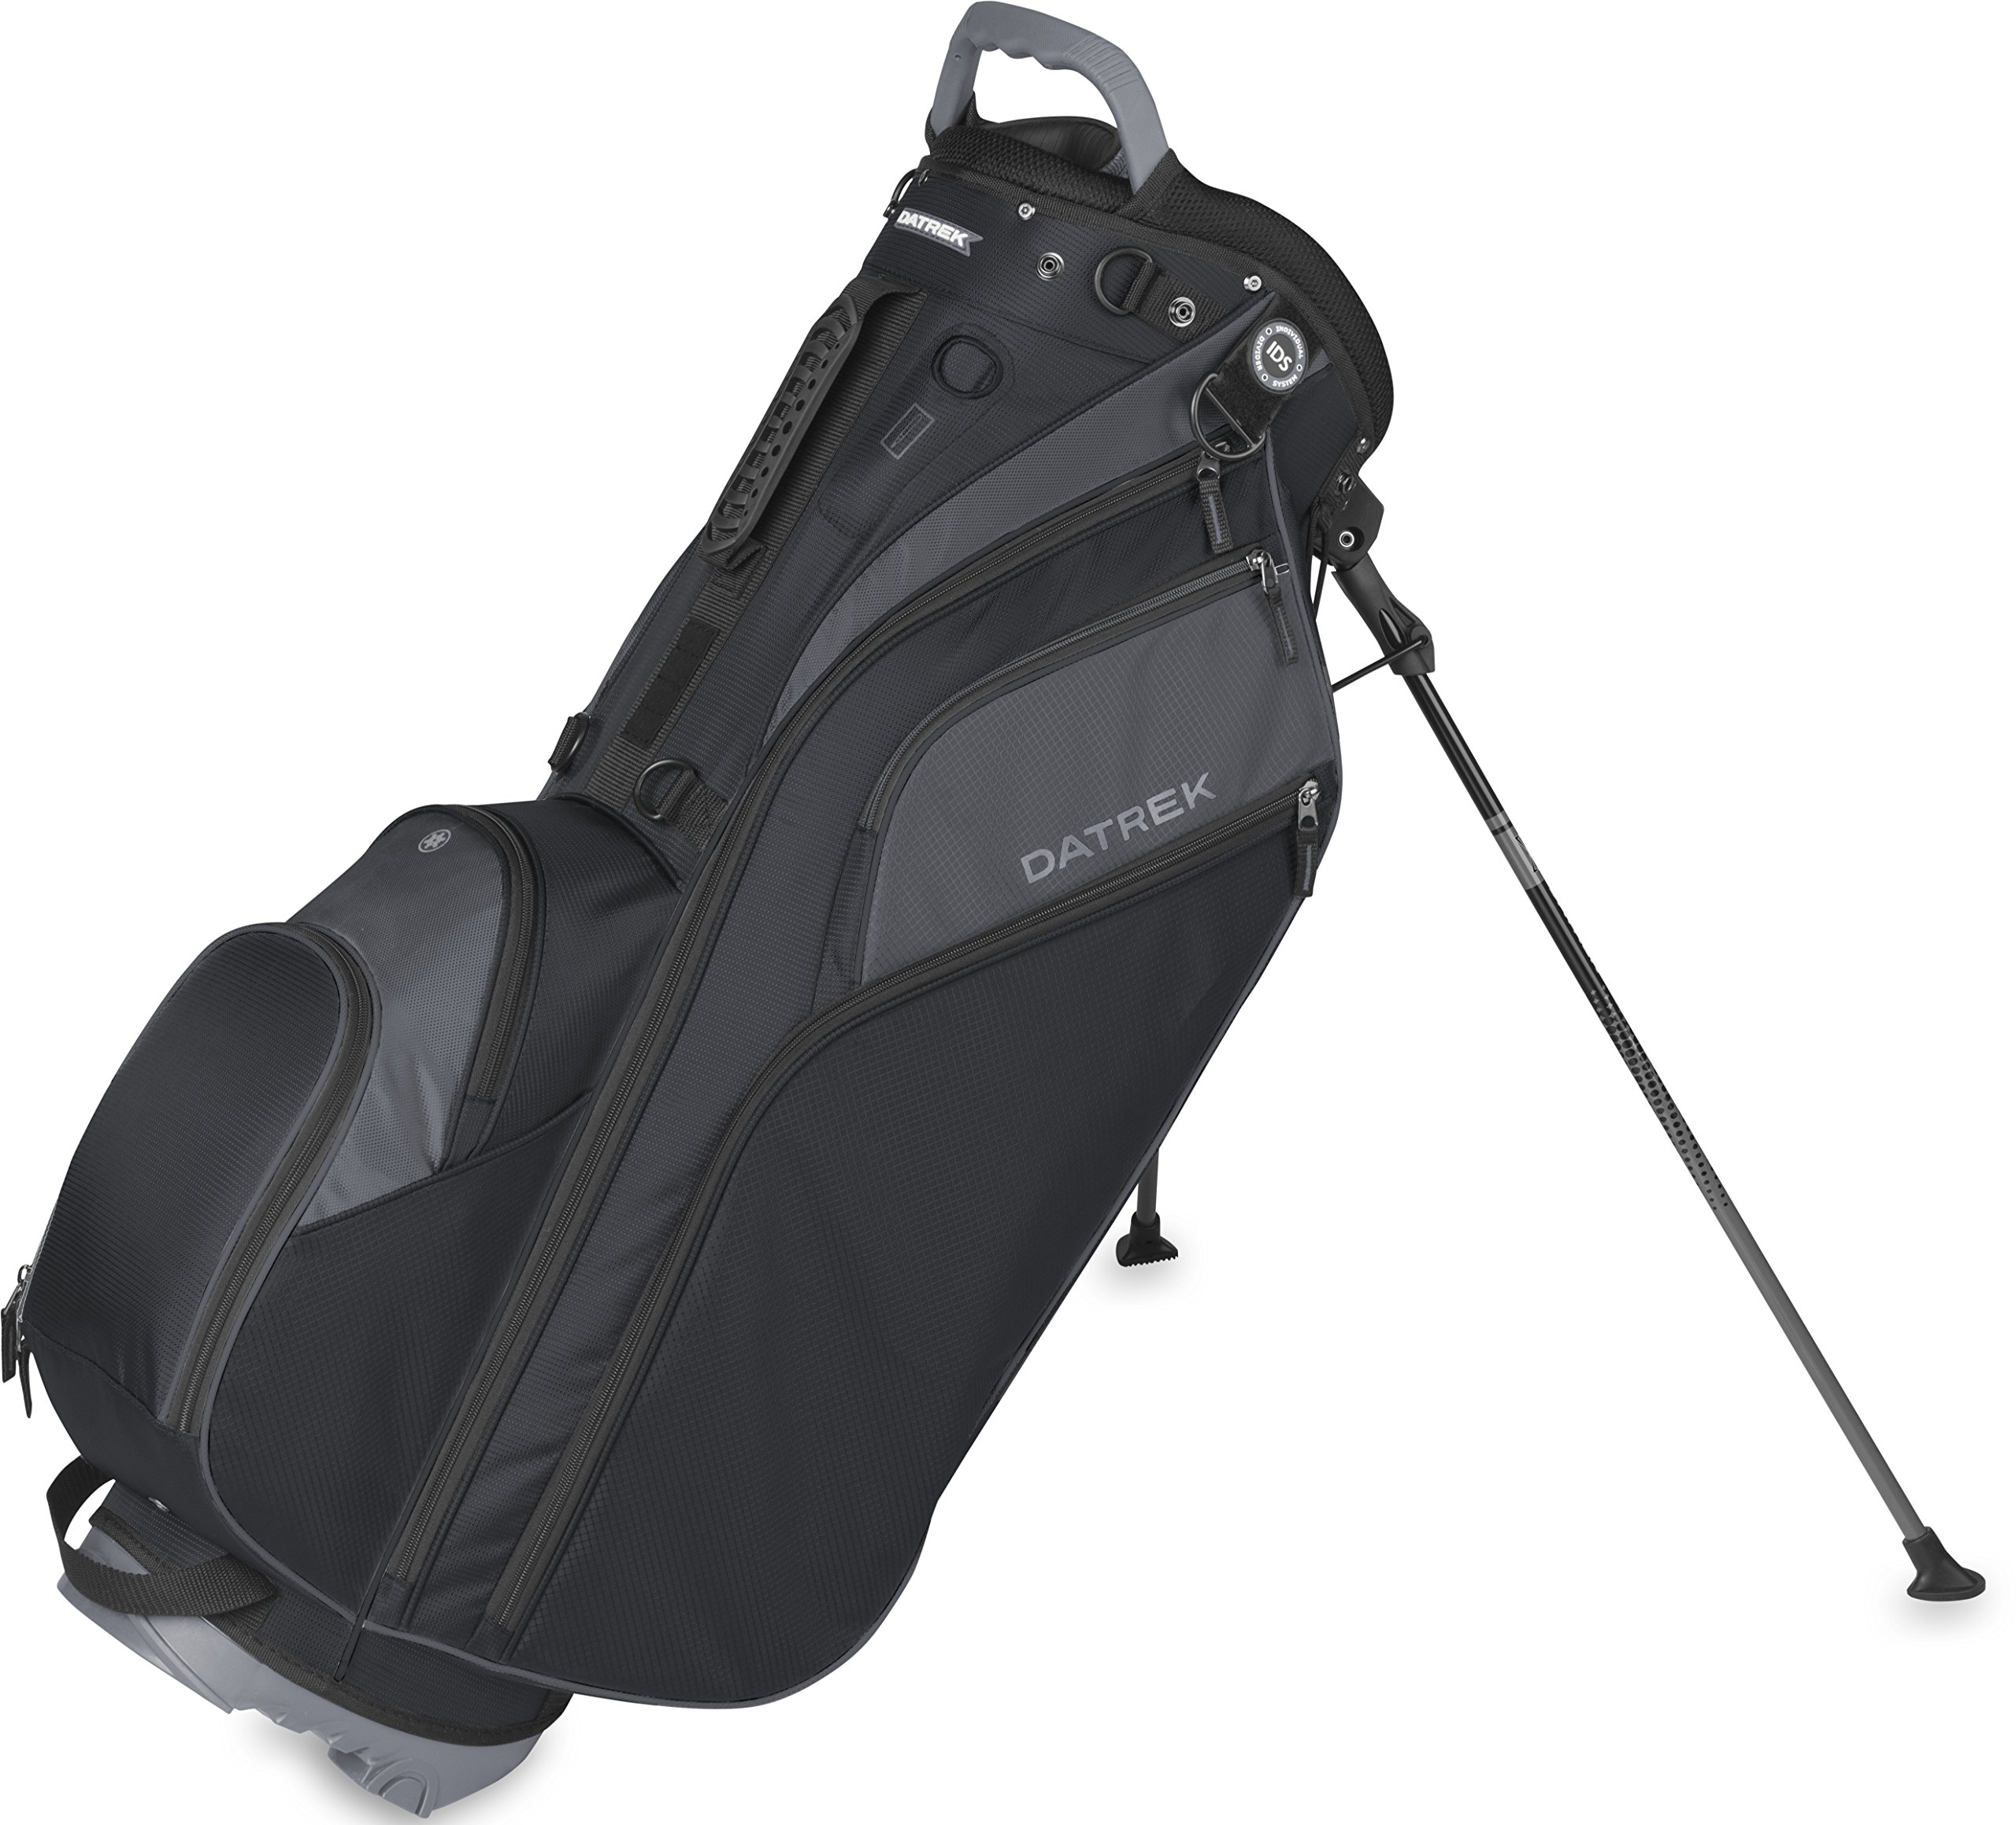 Datrek Golf Go Lite Hybrid Stand Bag (Black/Slate) by Datrek